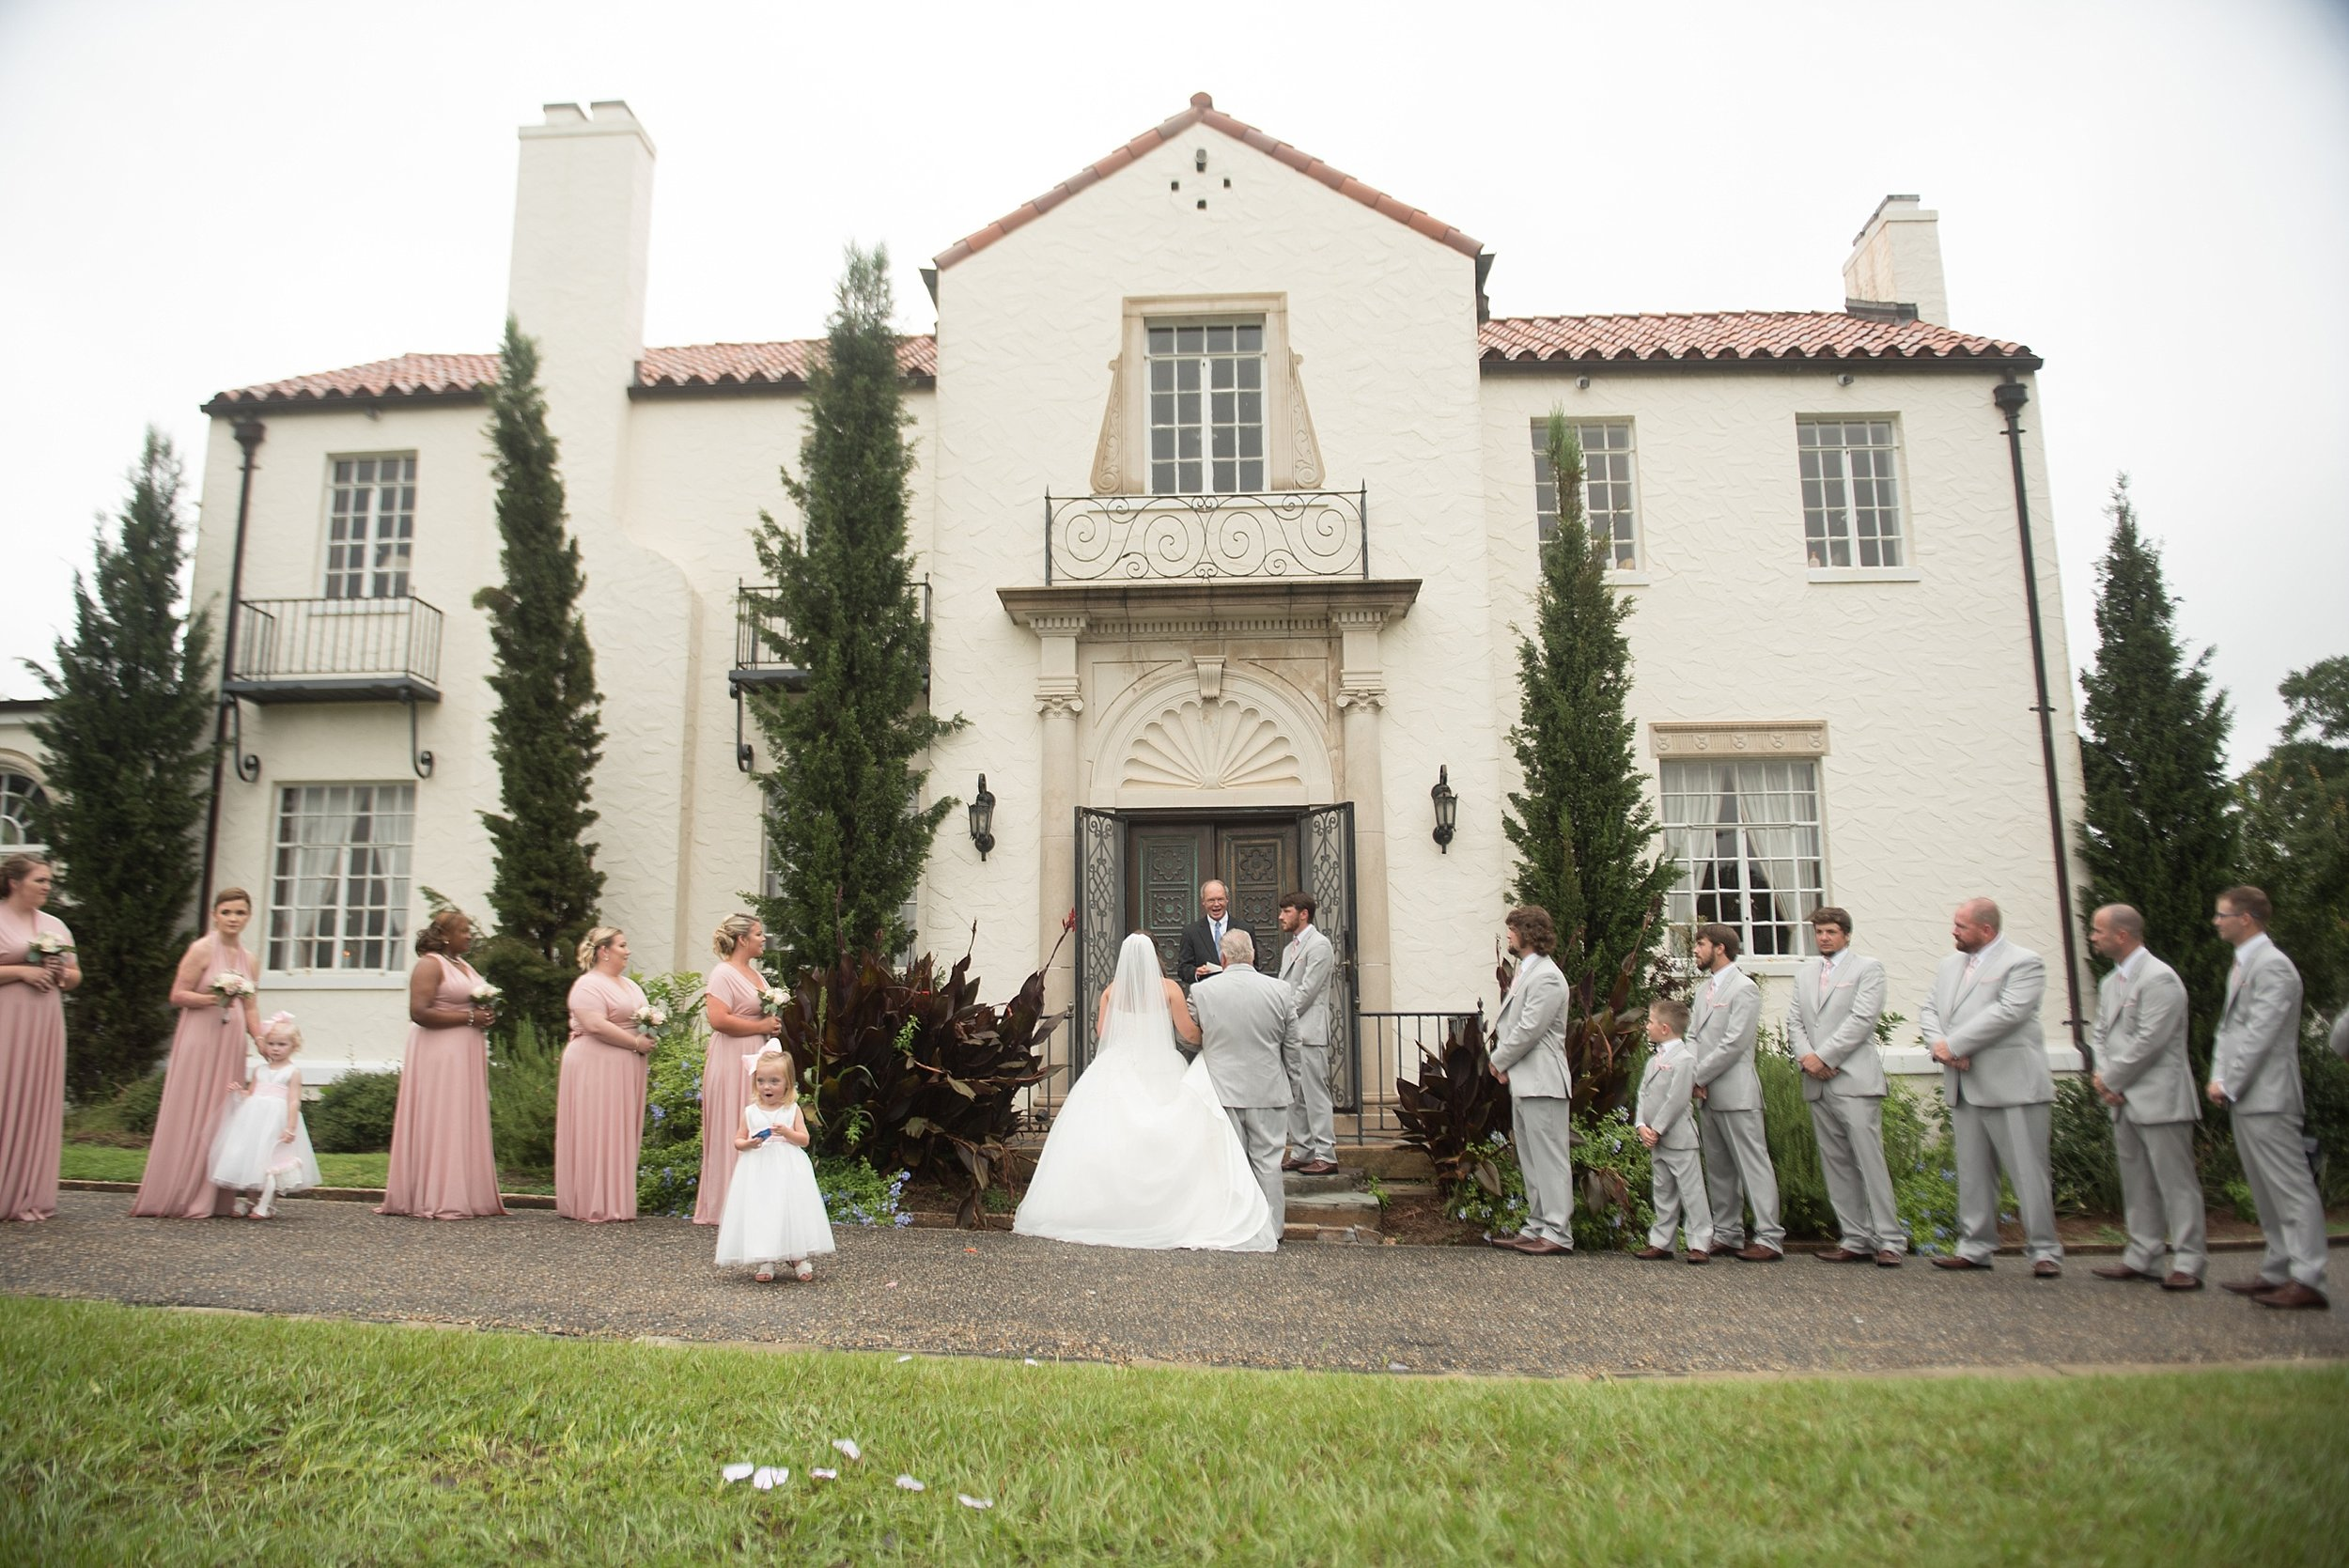 A wedding ceremony in front of Springdale in Andalusia, Alabama